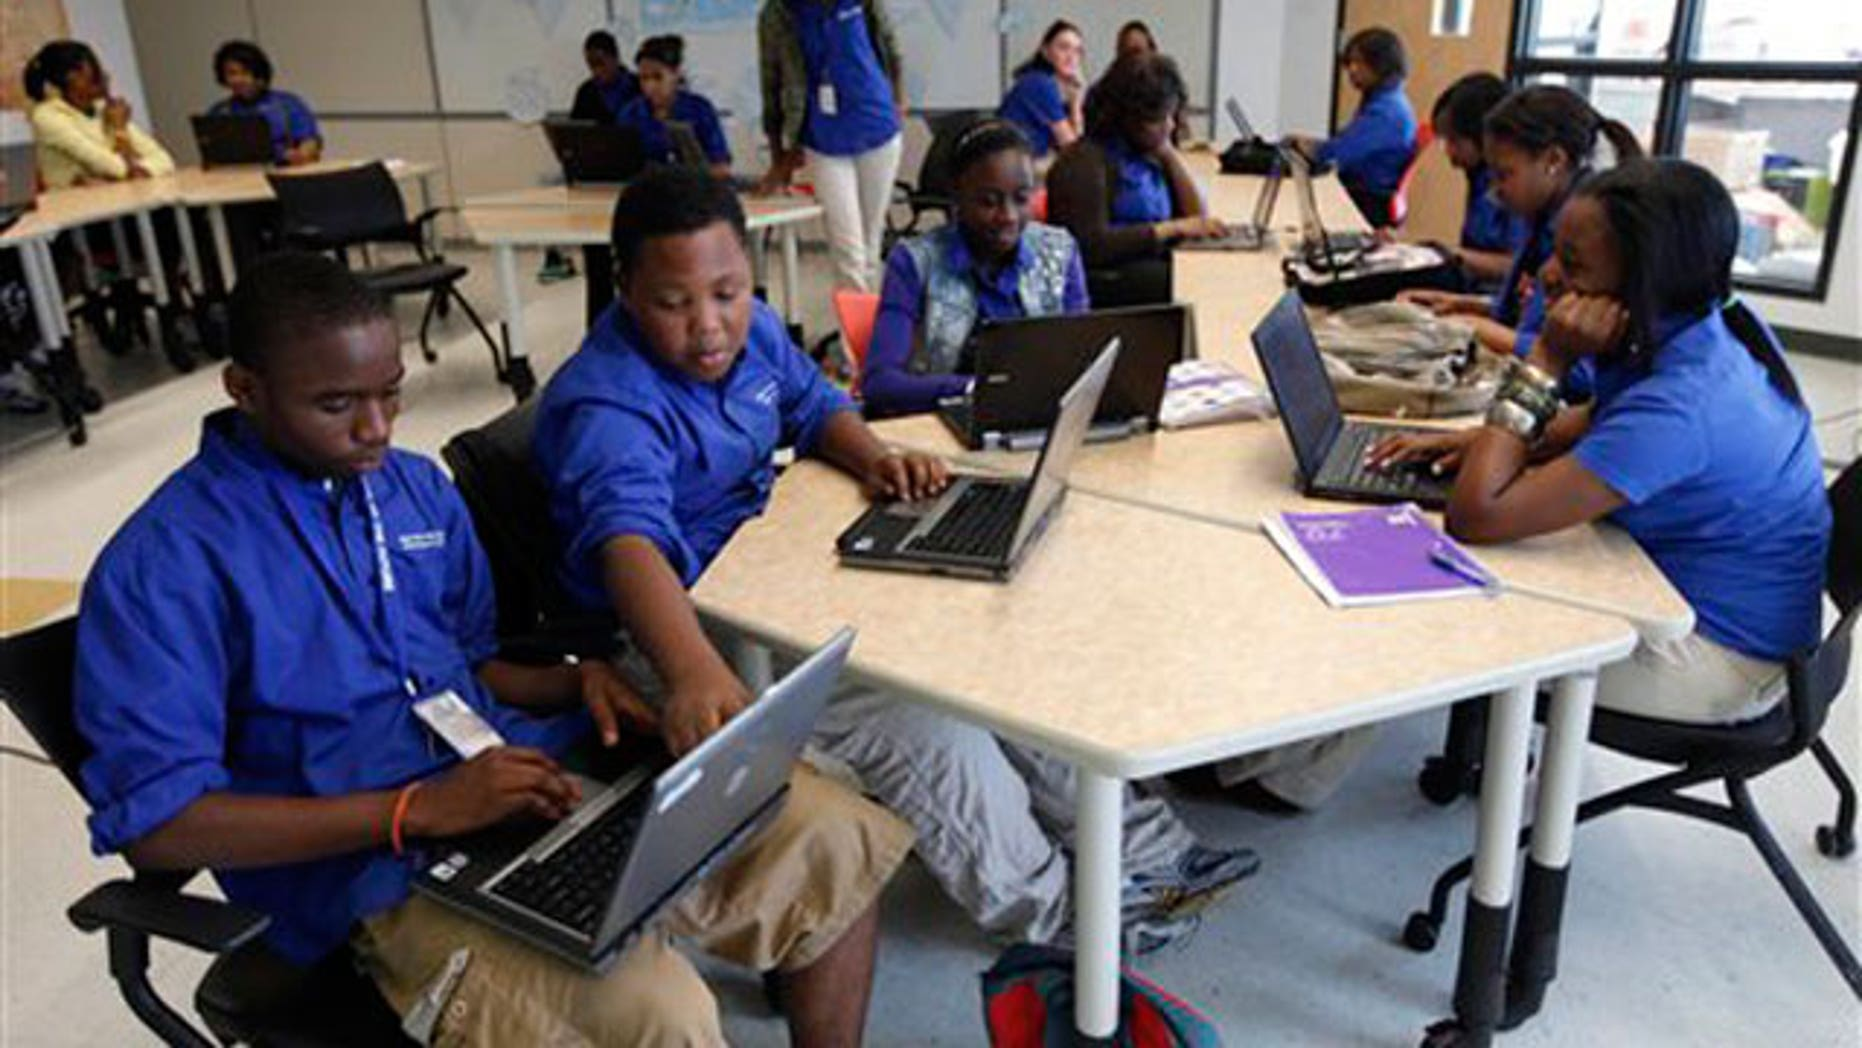 May 20: students use laptop computers in the classroom at the 'School of the Future' in Philadelphia.